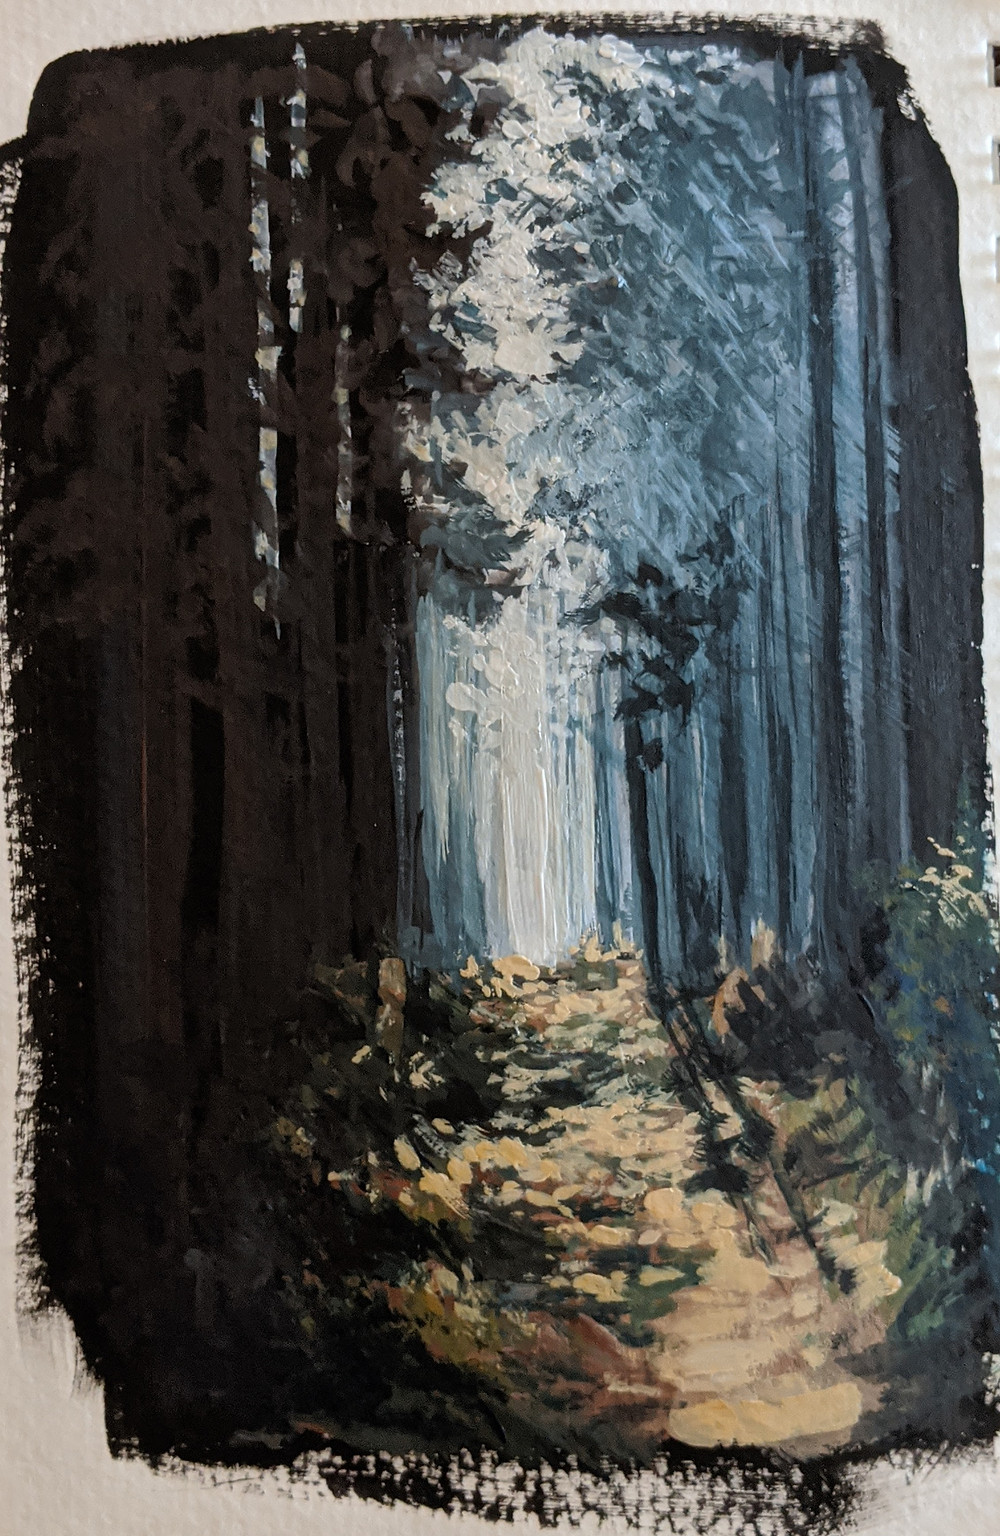 Dark forest, forest path, painting, gouache, daily art practice